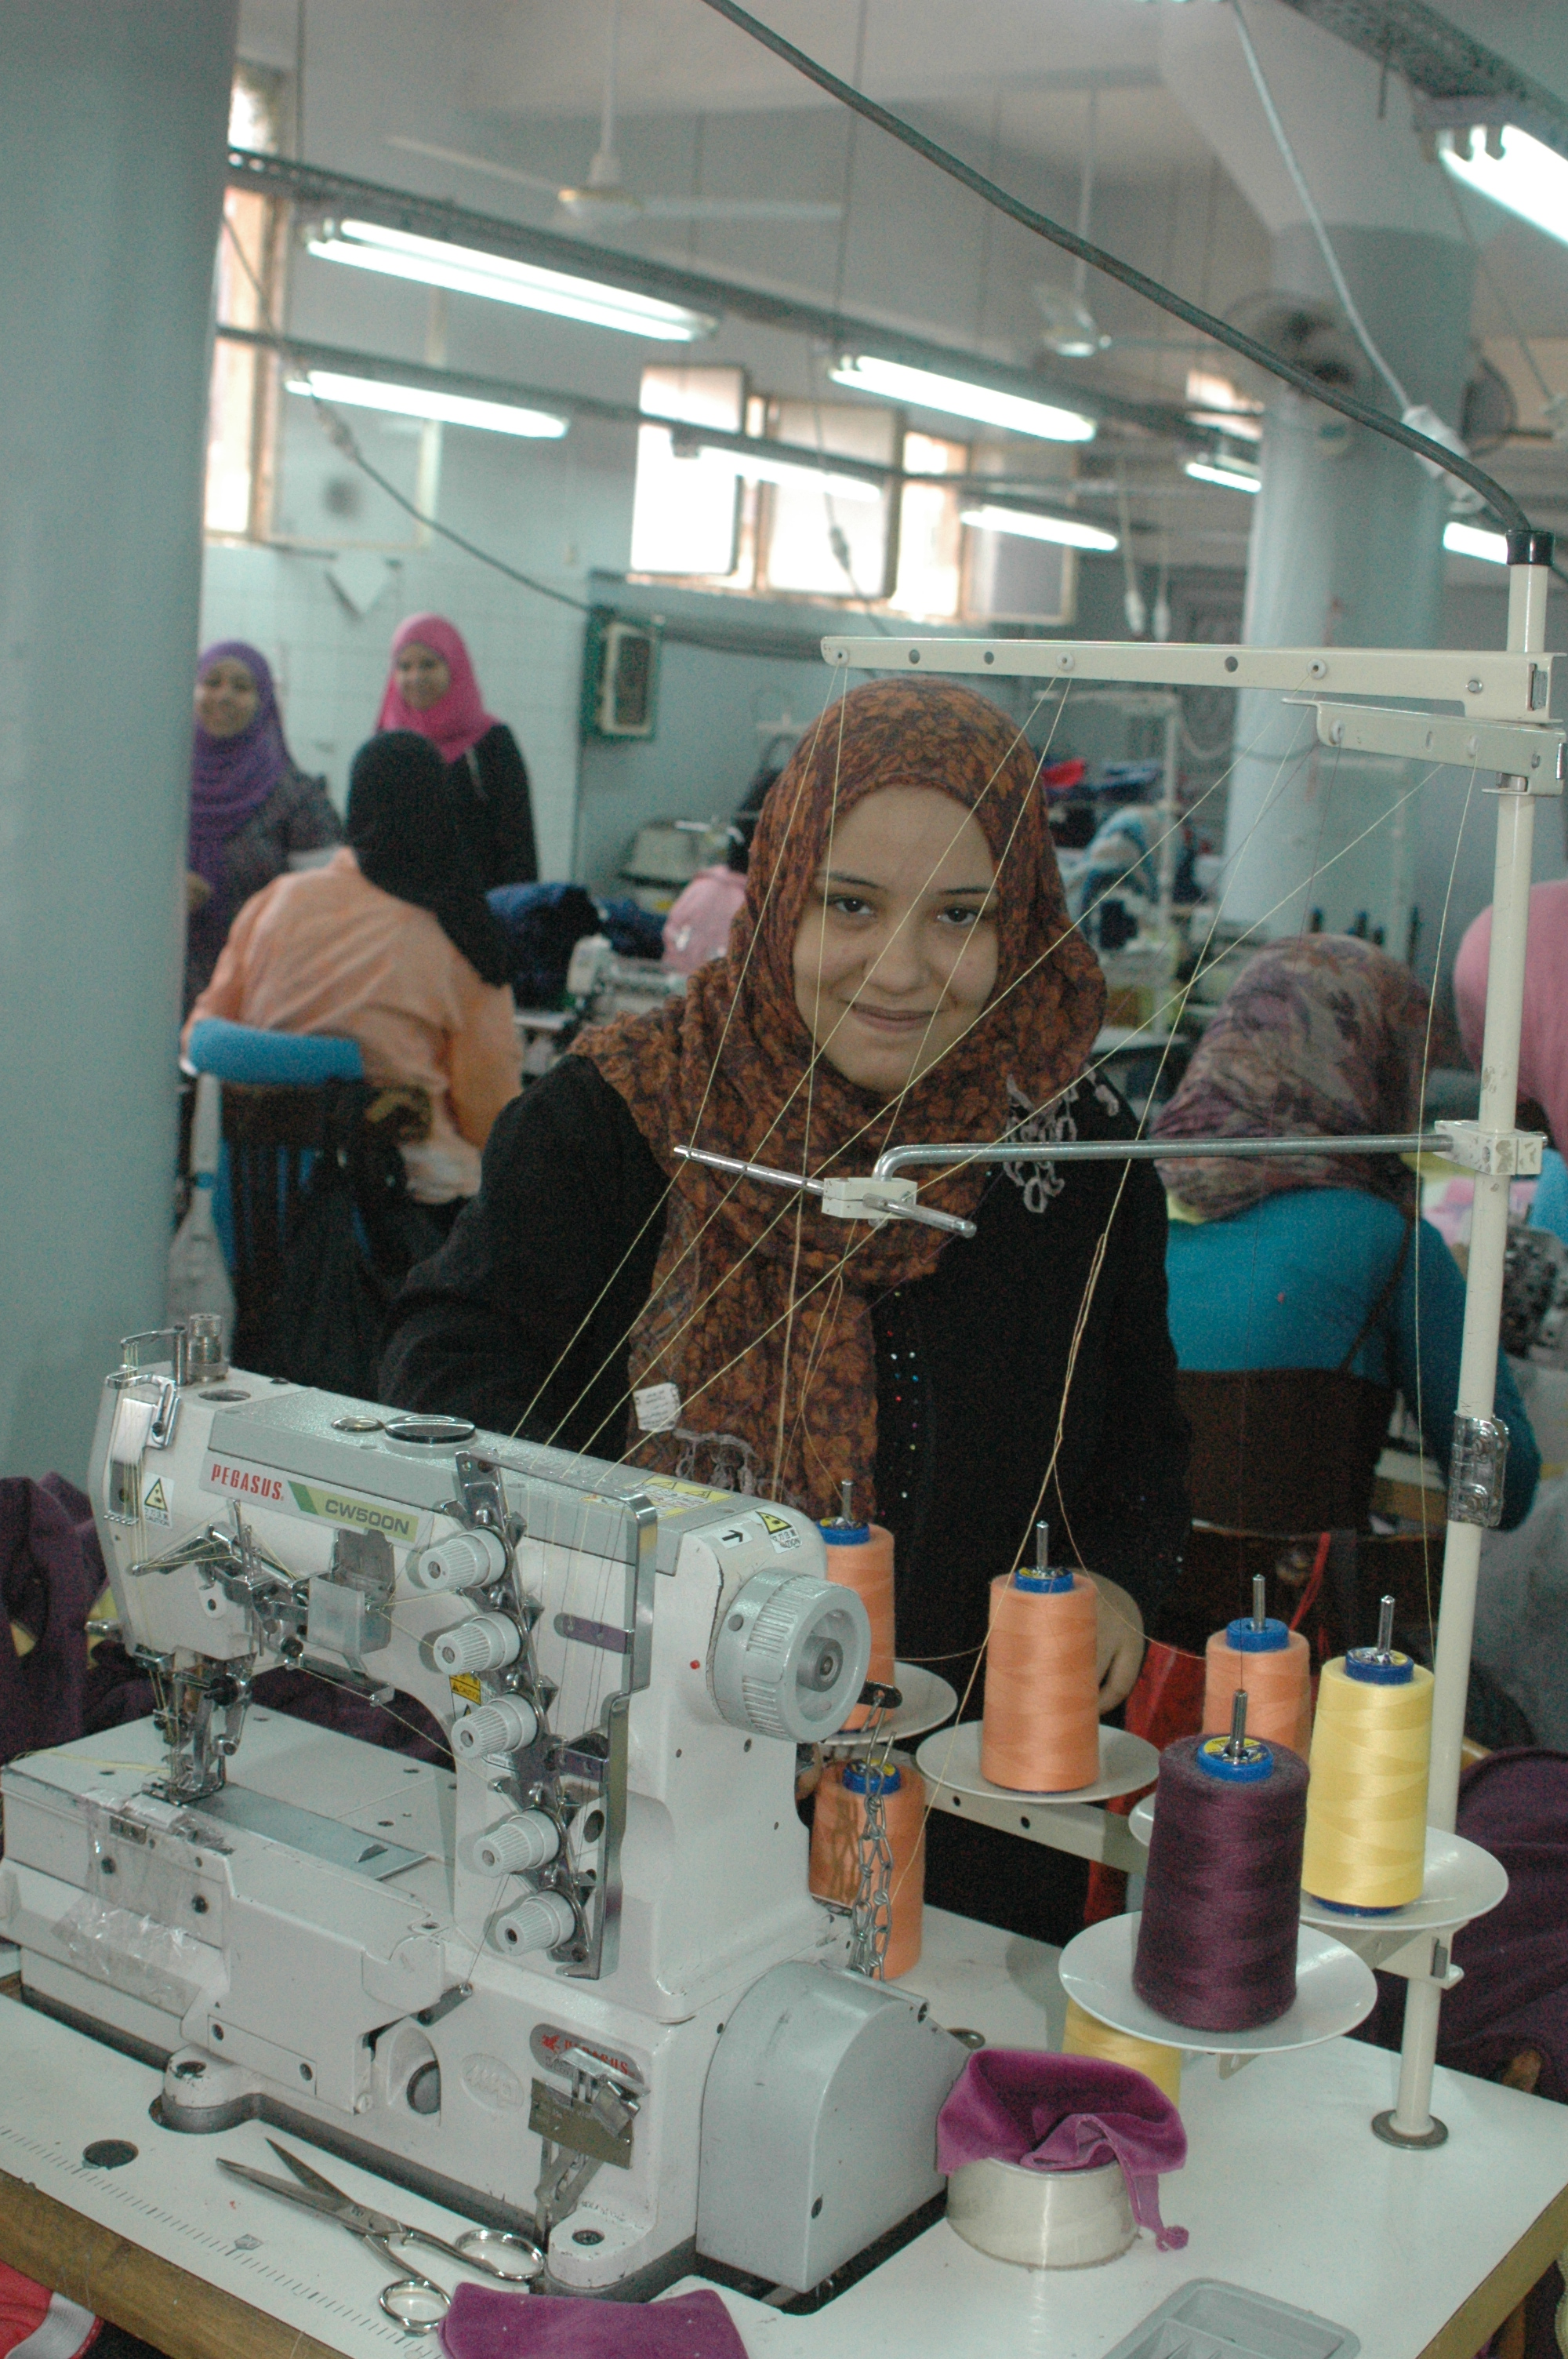 Woman works at sewing machine in small clothing factory